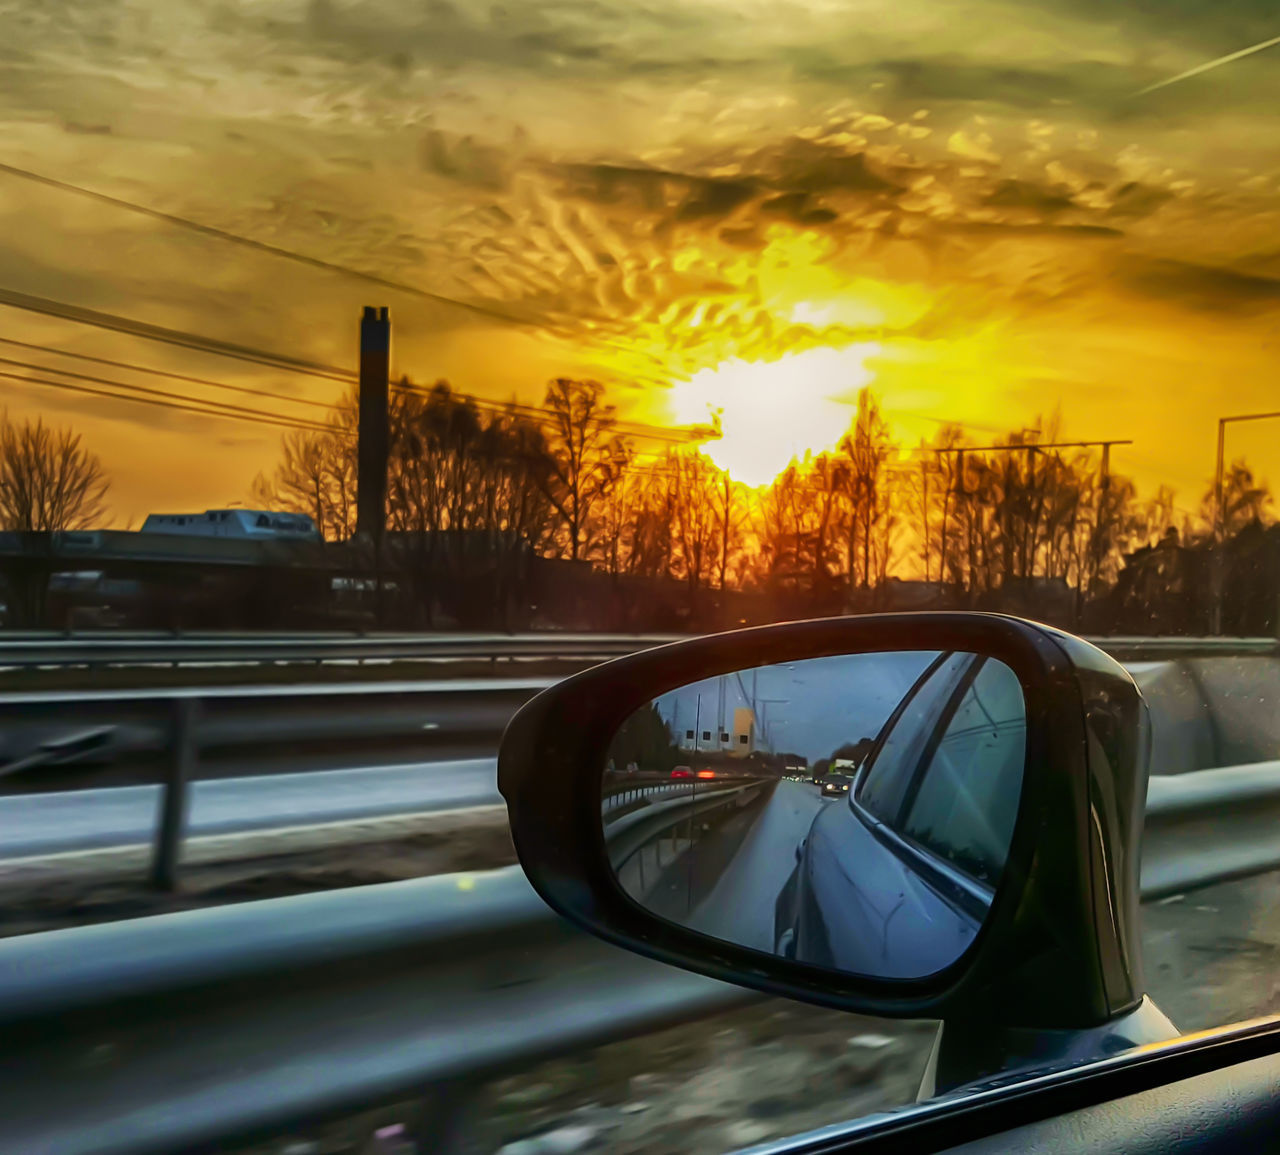 car, land vehicle, side-view mirror, transportation, sunset, mode of transport, glass - material, car interior, reflection, sky, vehicle mirror, cloud - sky, road trip, windshield, road, travel, car point of view, no people, water, close-up, nature, outdoors, tree, city, day